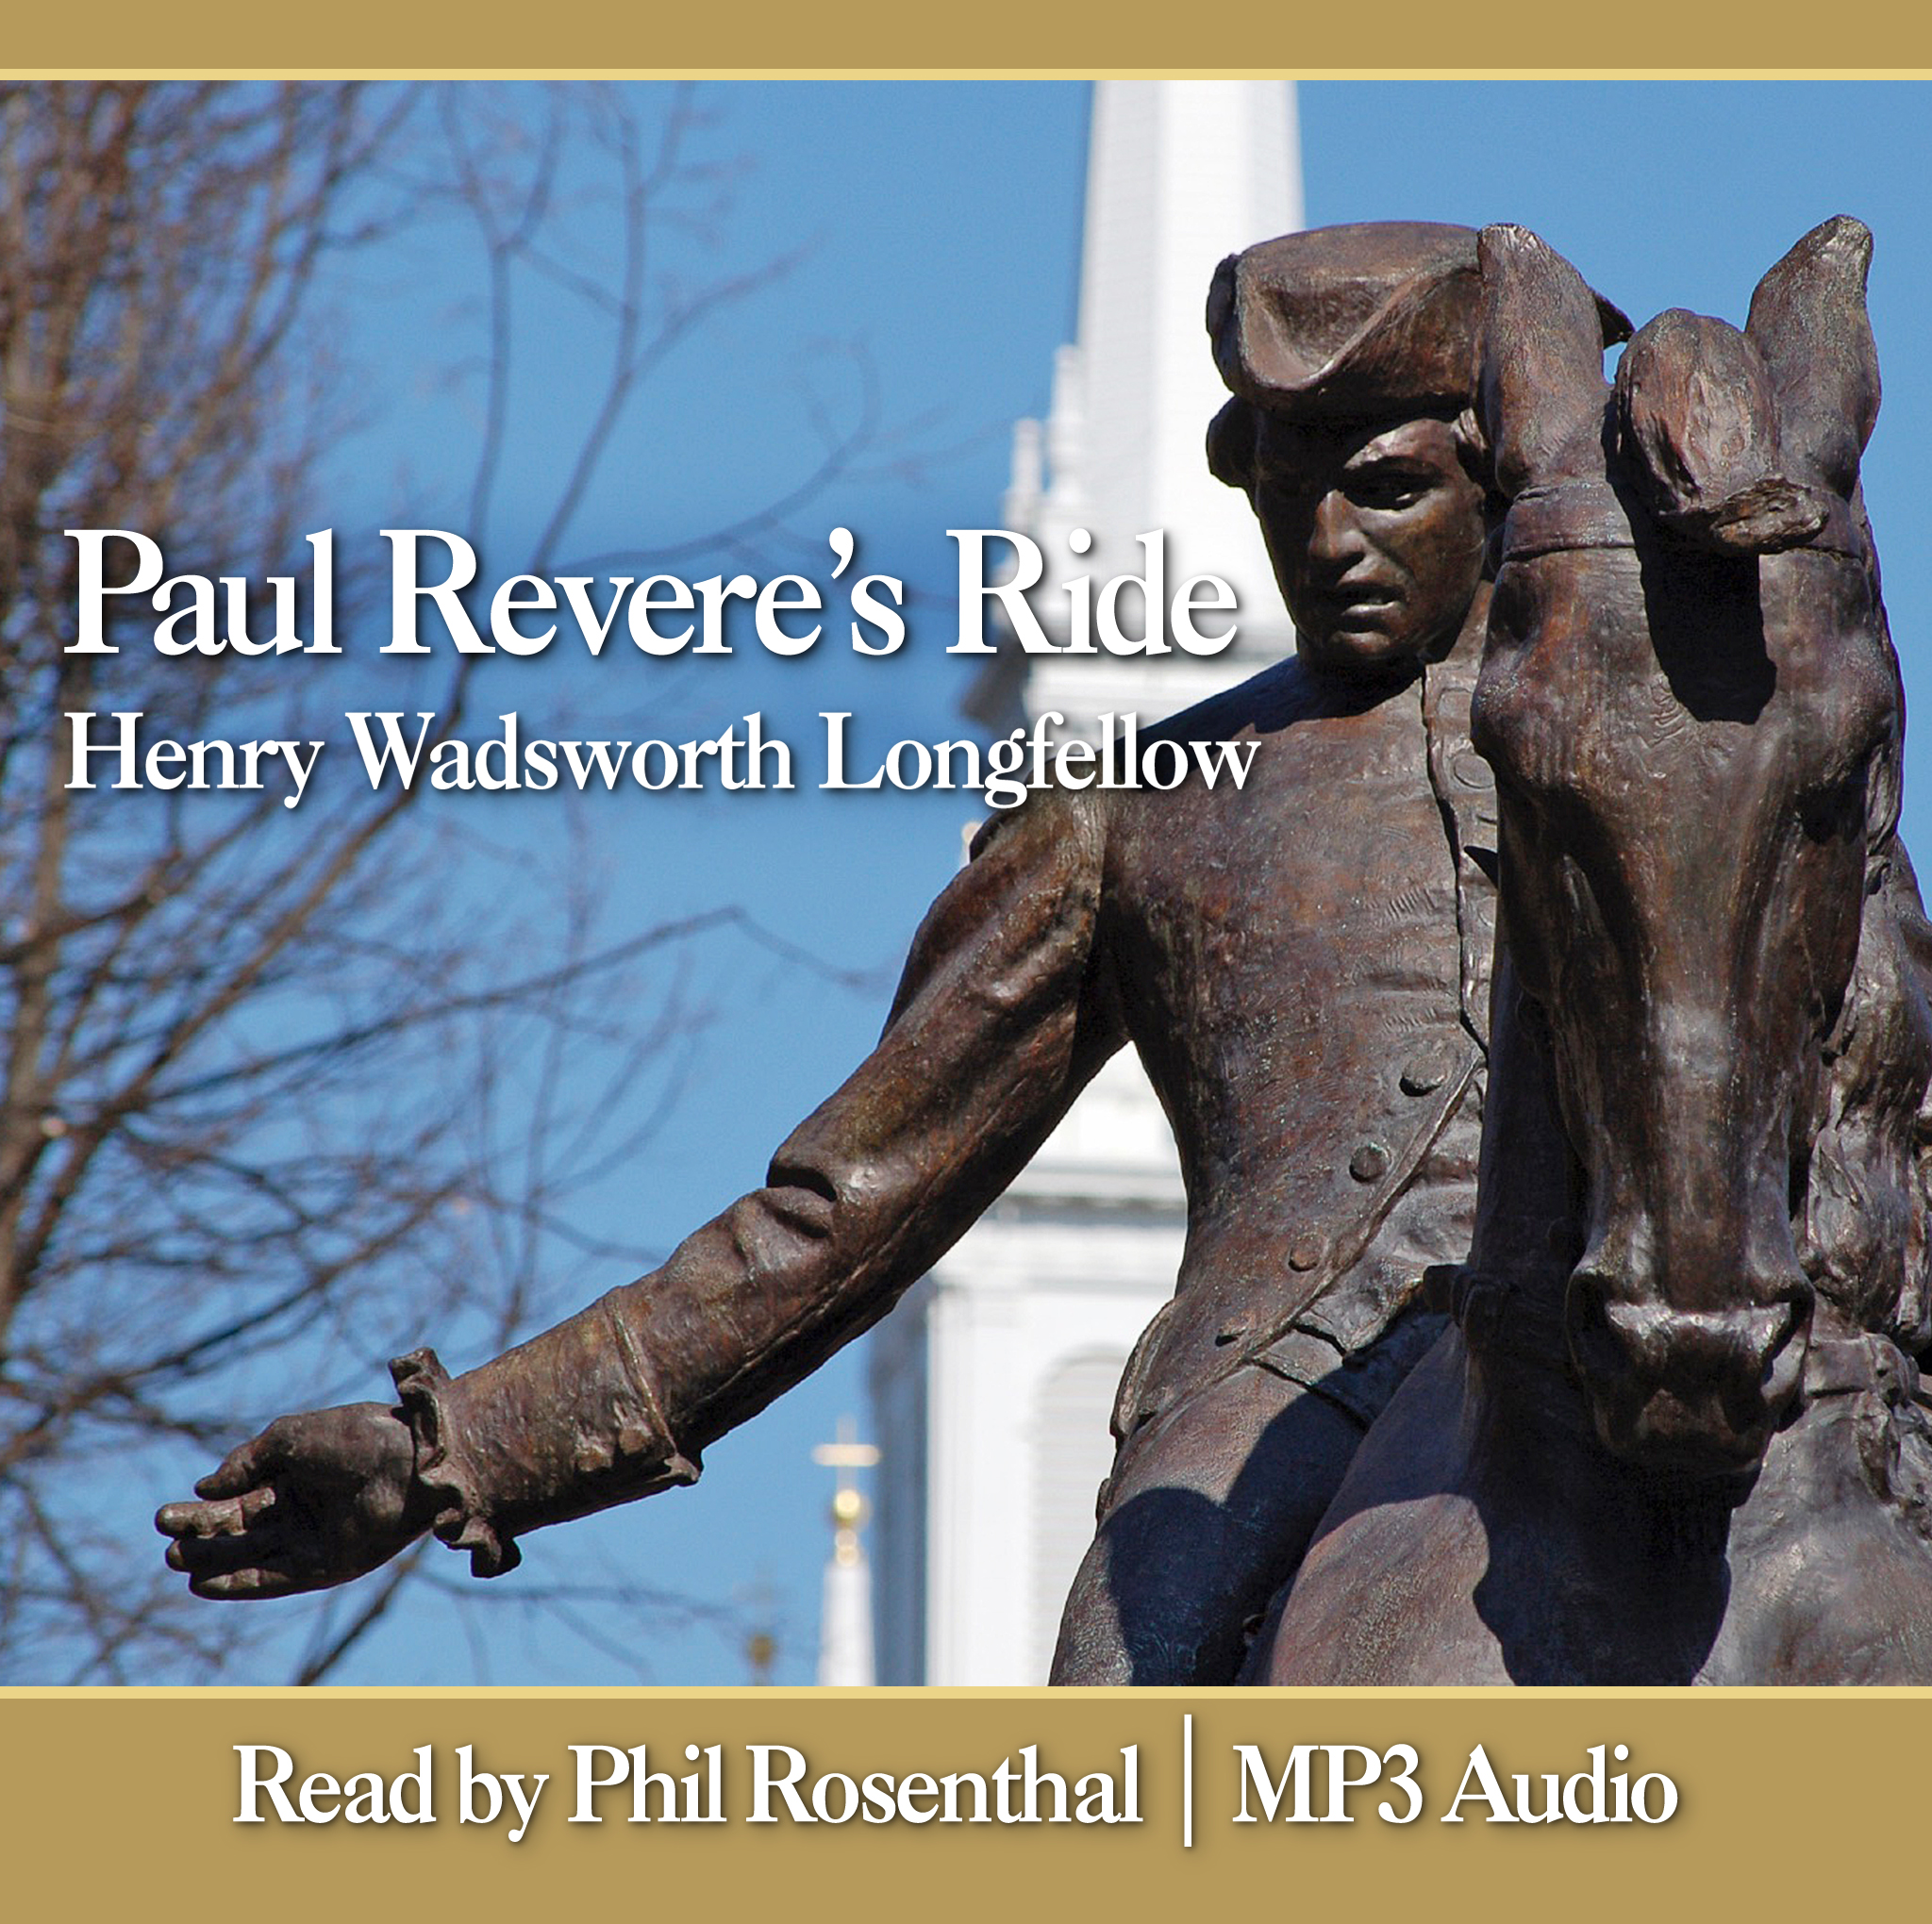 Walking Tours Of Boston With A Relative Of Paul Revere For